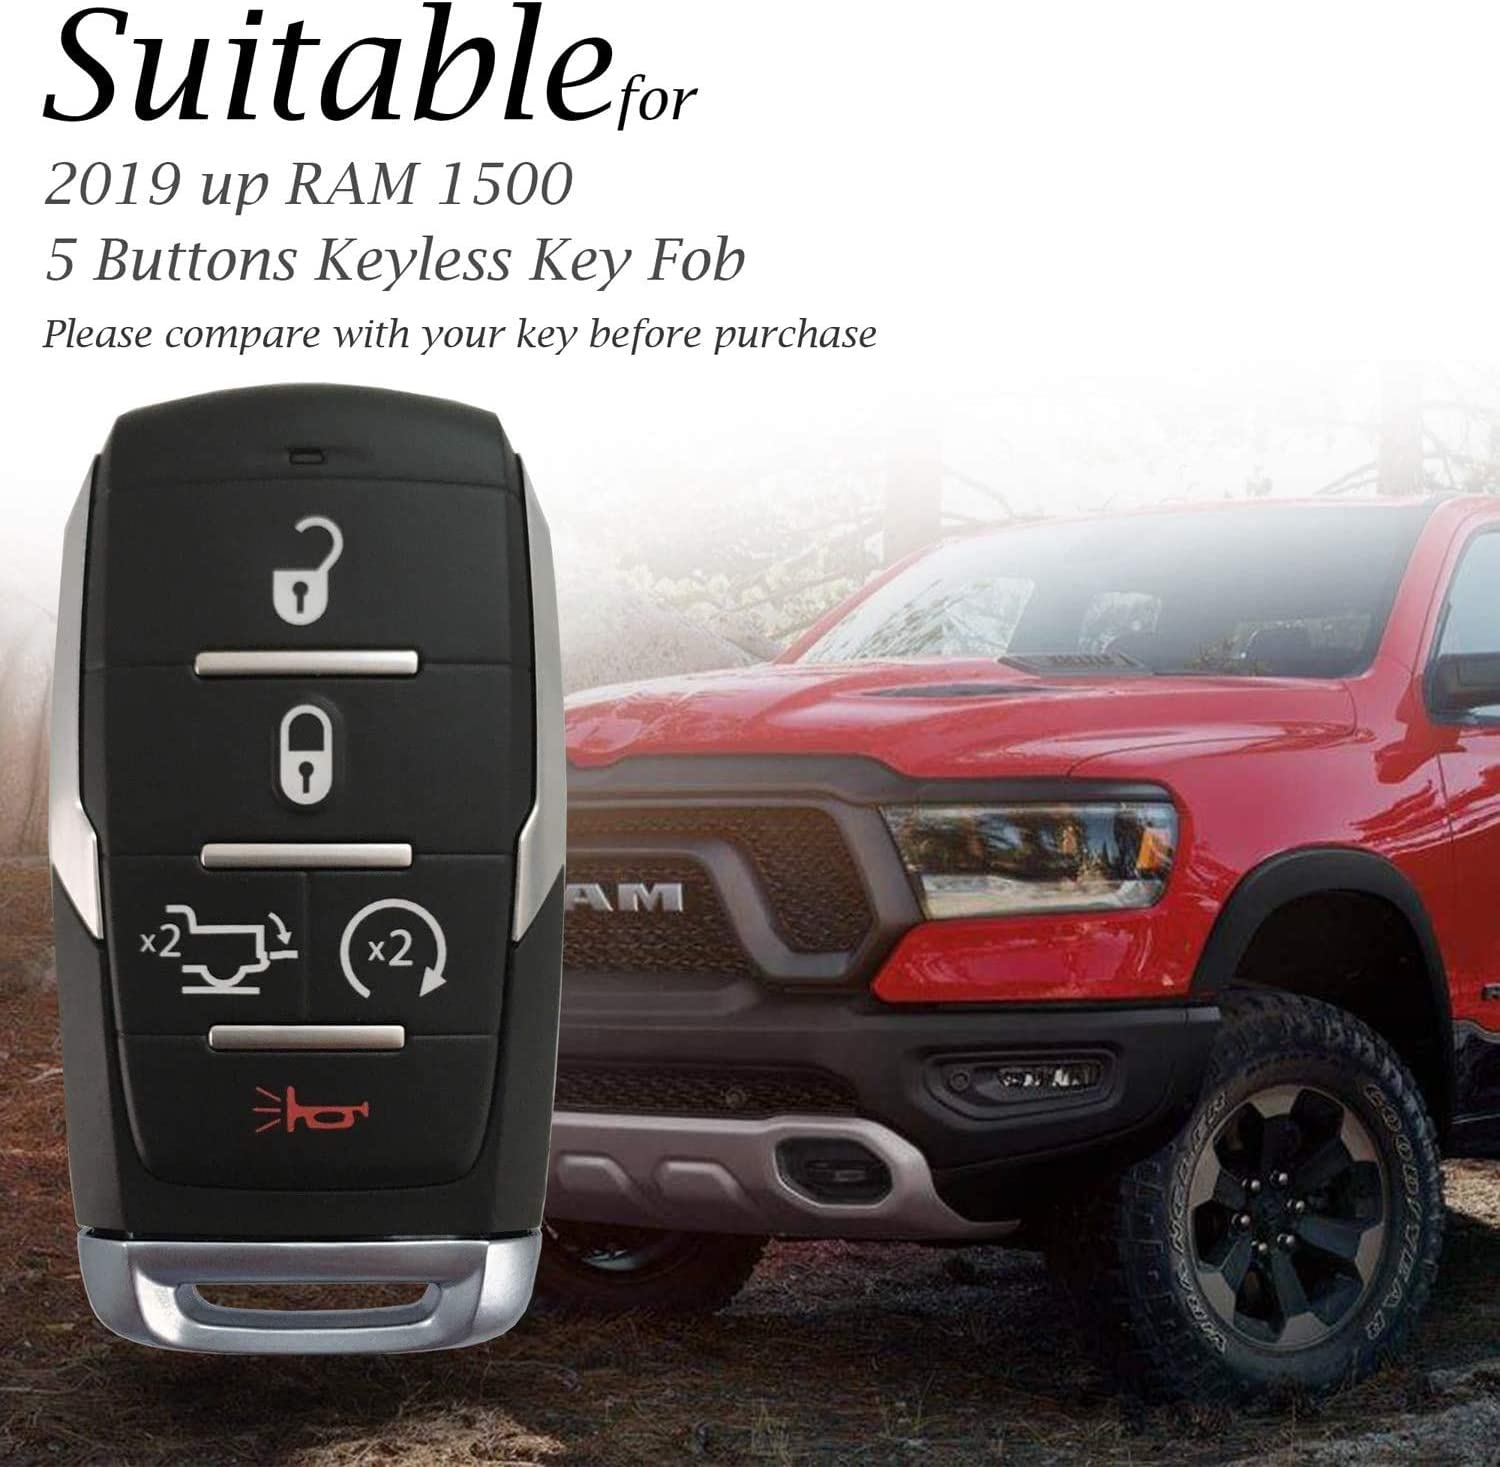 Rpkey Silicone Keyless Entry Remote Control Key Fob Cover Case protector Replacement Fit For 2019-2020 RAM 1500(5-Button)Black